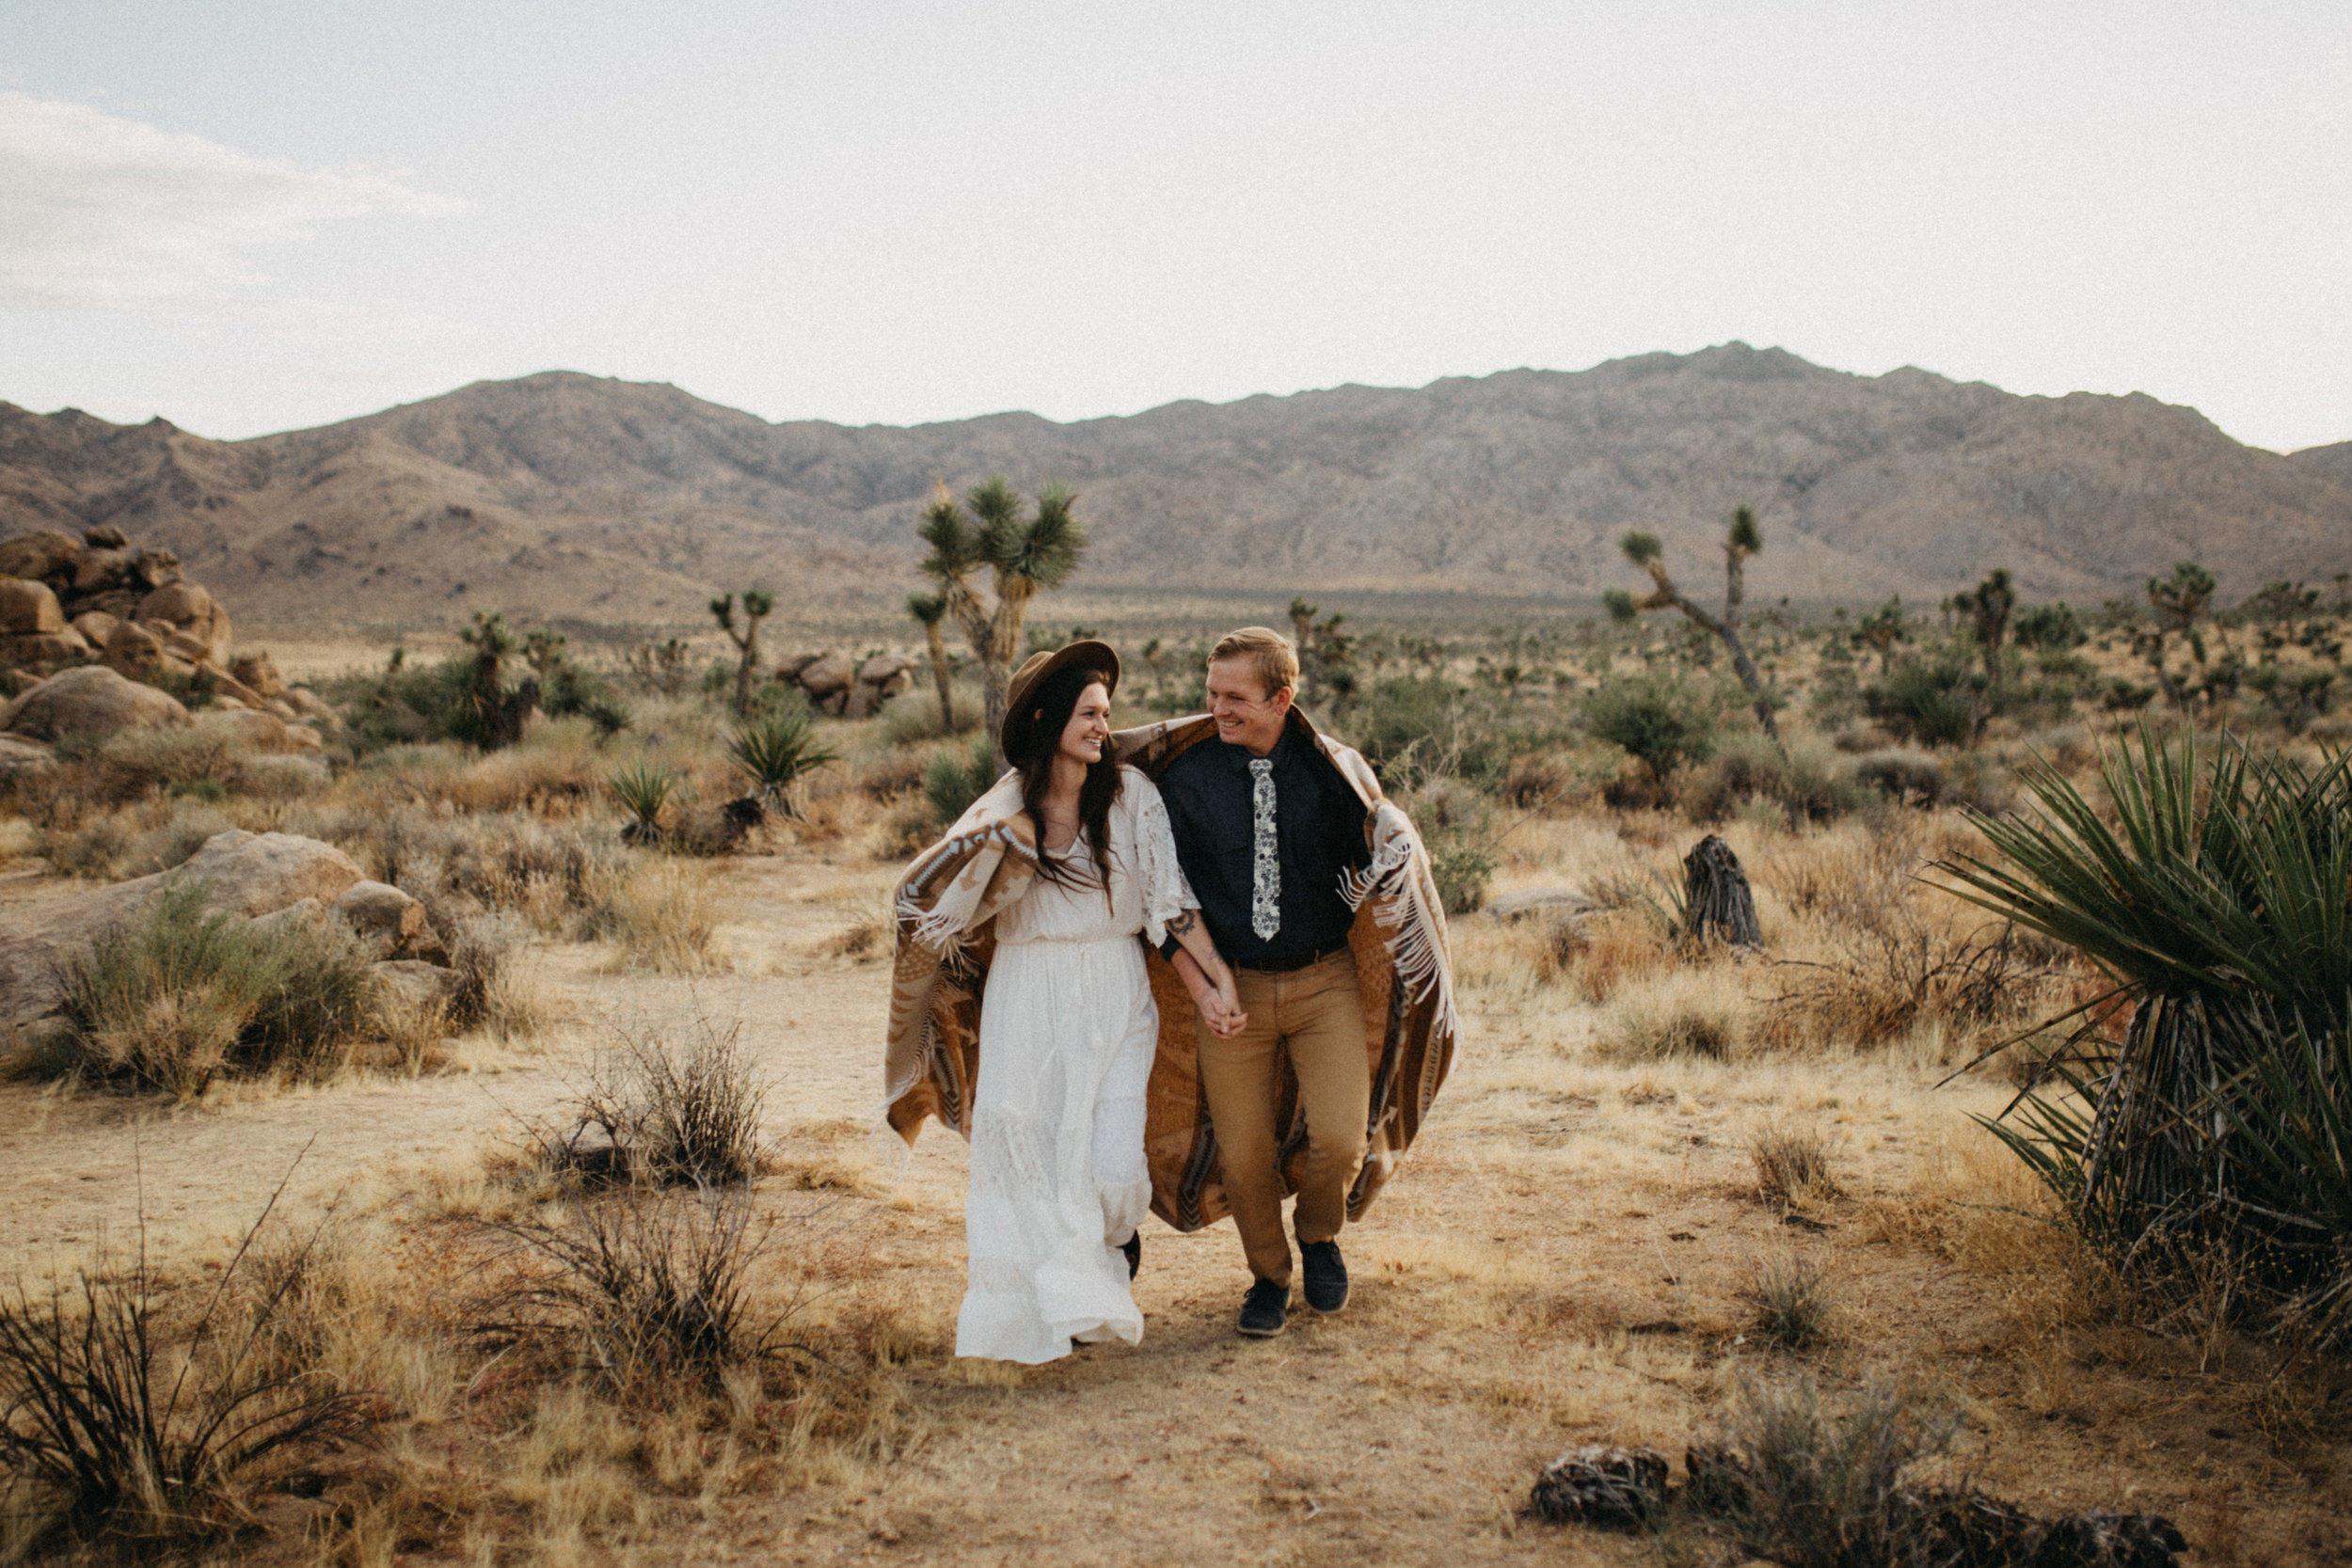 Joshua Tree National Park Adventure Couples Session Photographer Payton Marie Photography-25.jpg